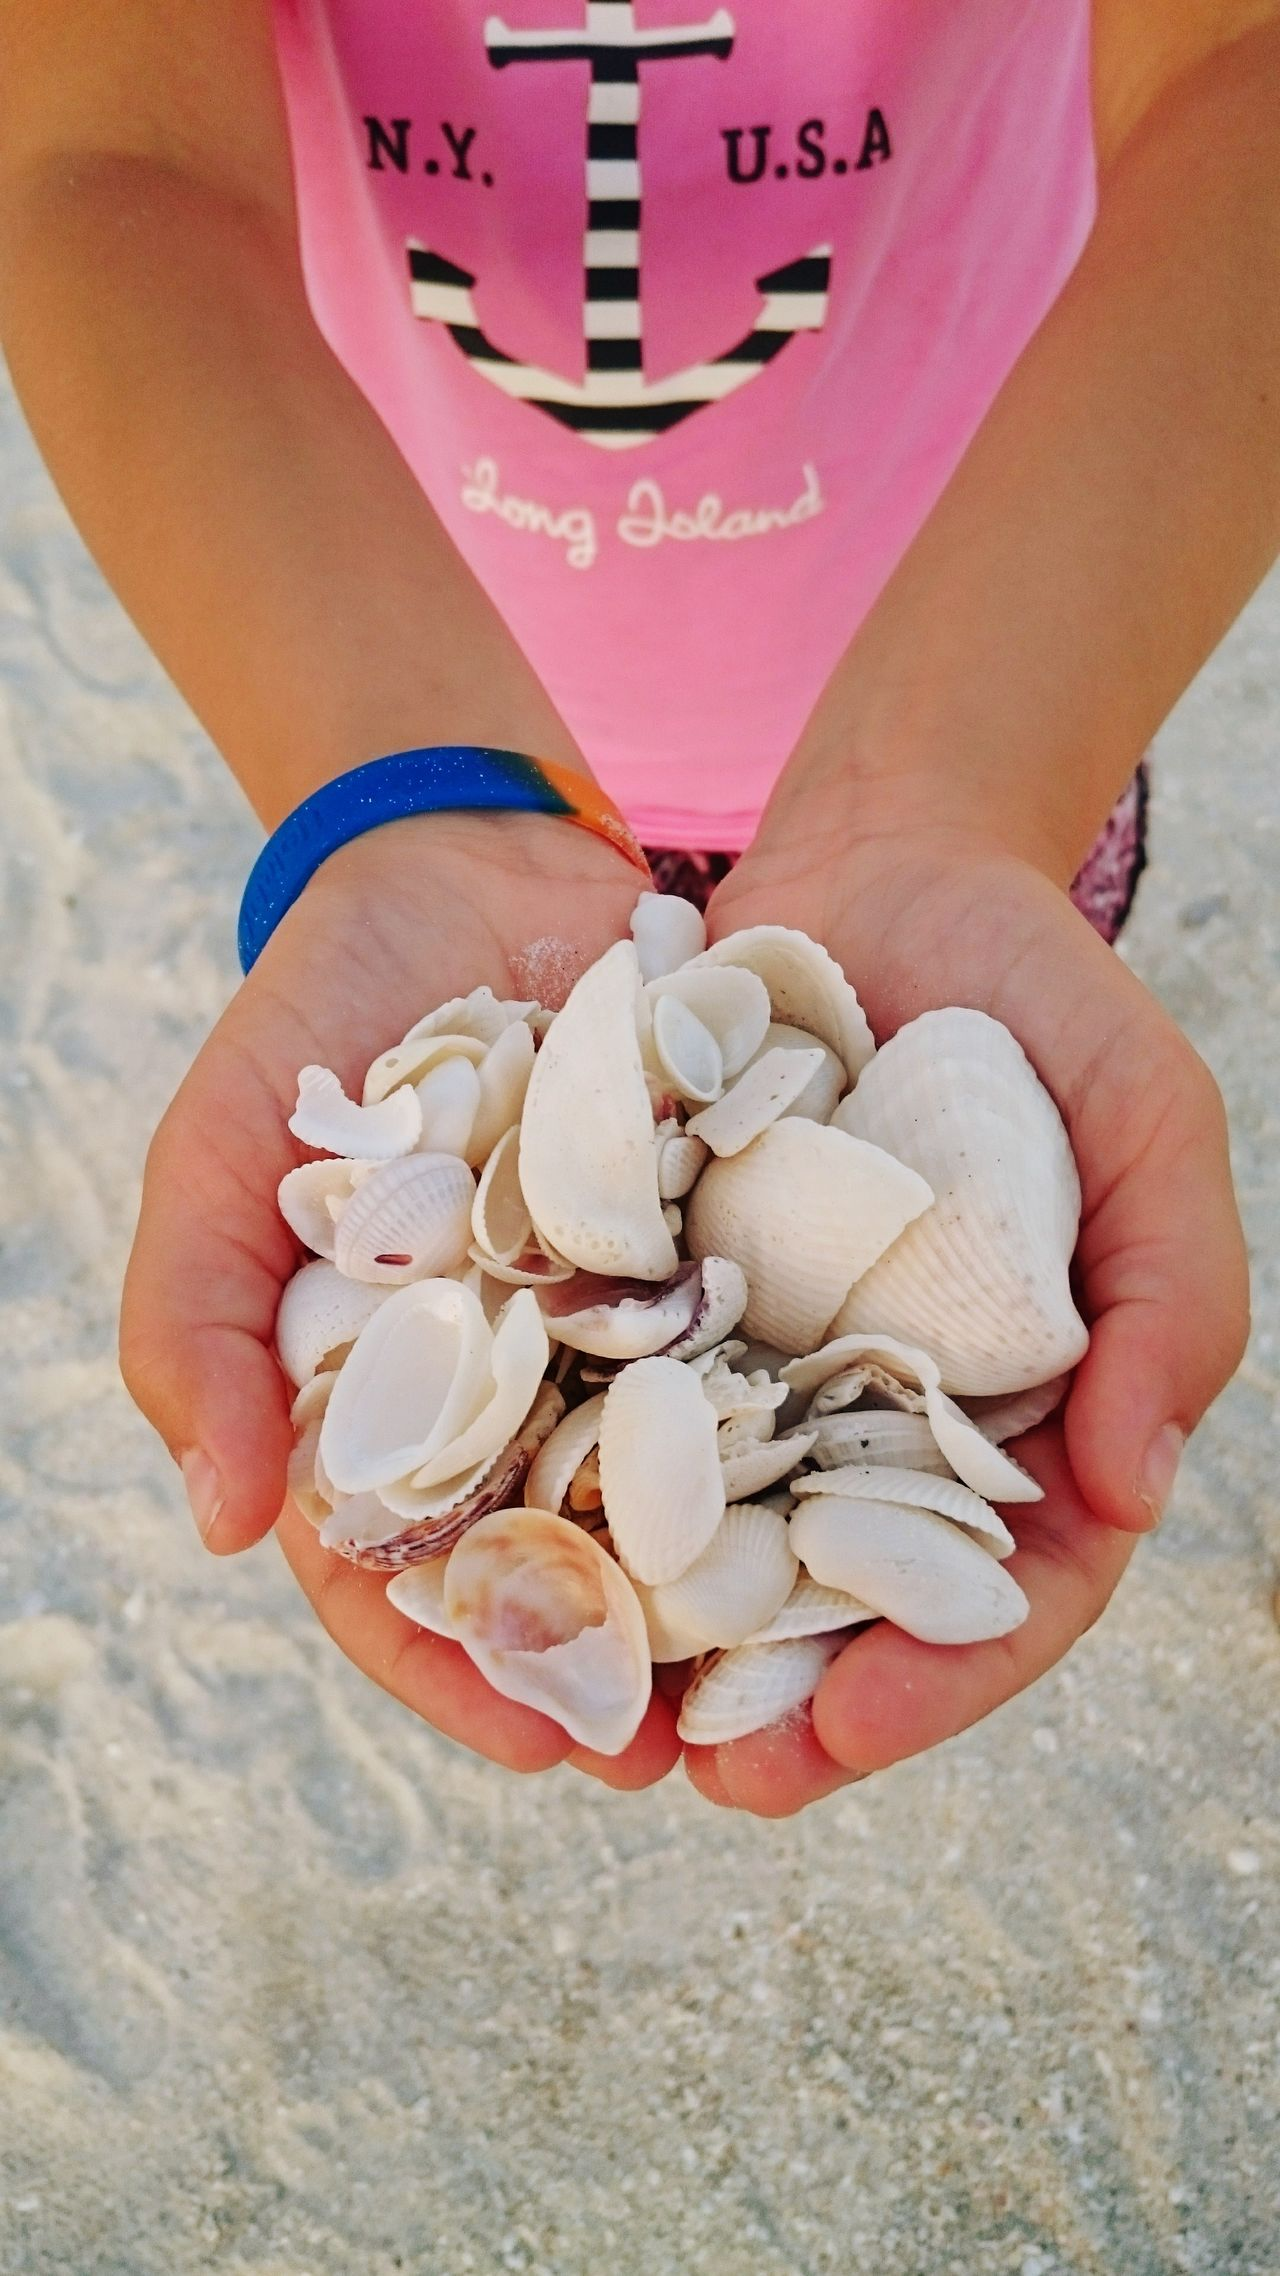 Human Body Part One Person Holding High Angle View Human Hand People Children Only Child Close-up Day Beauty Seashells Low Section Outdoors Vacationtime Sanibel Islands Sunsets